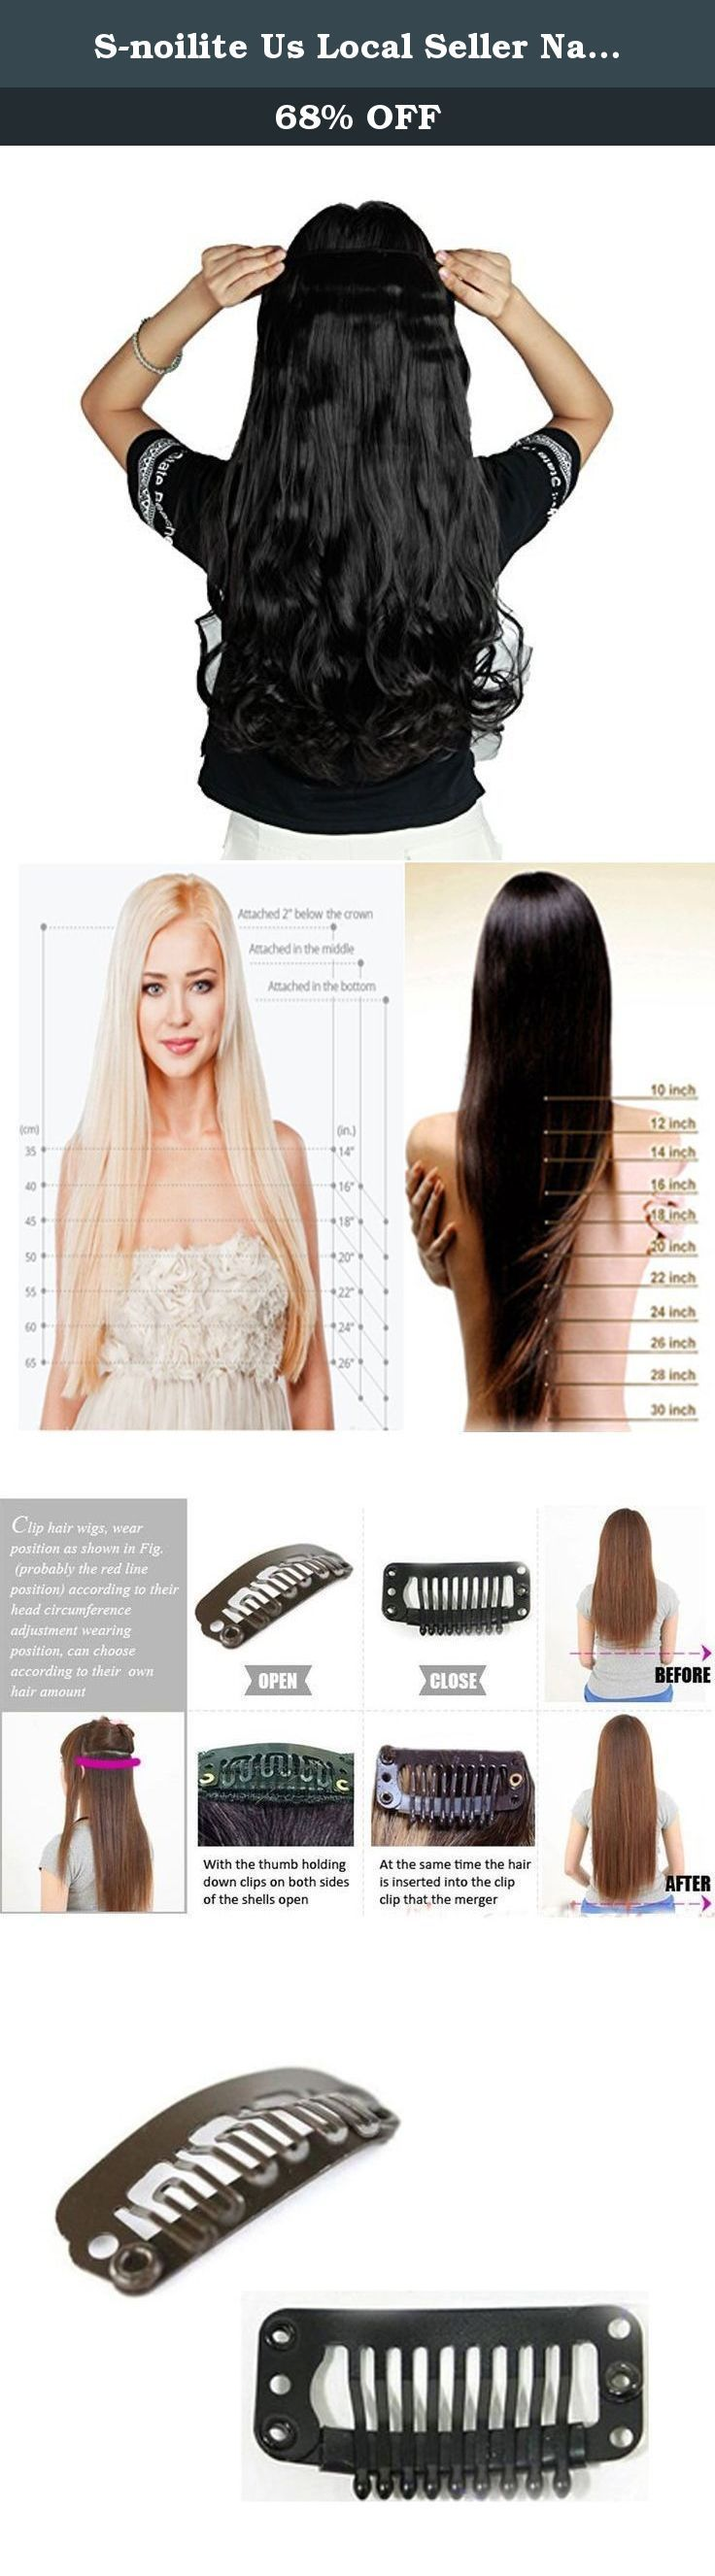 S-noilite Us Local Seller Natural Black 24 Inches Curly One Piece Clip in Hair Extensions (5 Clips) Clip Ins Hairpiece for Women Lady Girl. This is a one piece clip in hair extensions made from premium synthetic fibres. There are five hair clips along the top for easy, secure and discreet attachment to your hair. You can fit them yourself in the mirror, and have them in and a new style ready to go in minutes. This item is ideal for adding a little volume or length to your current style…